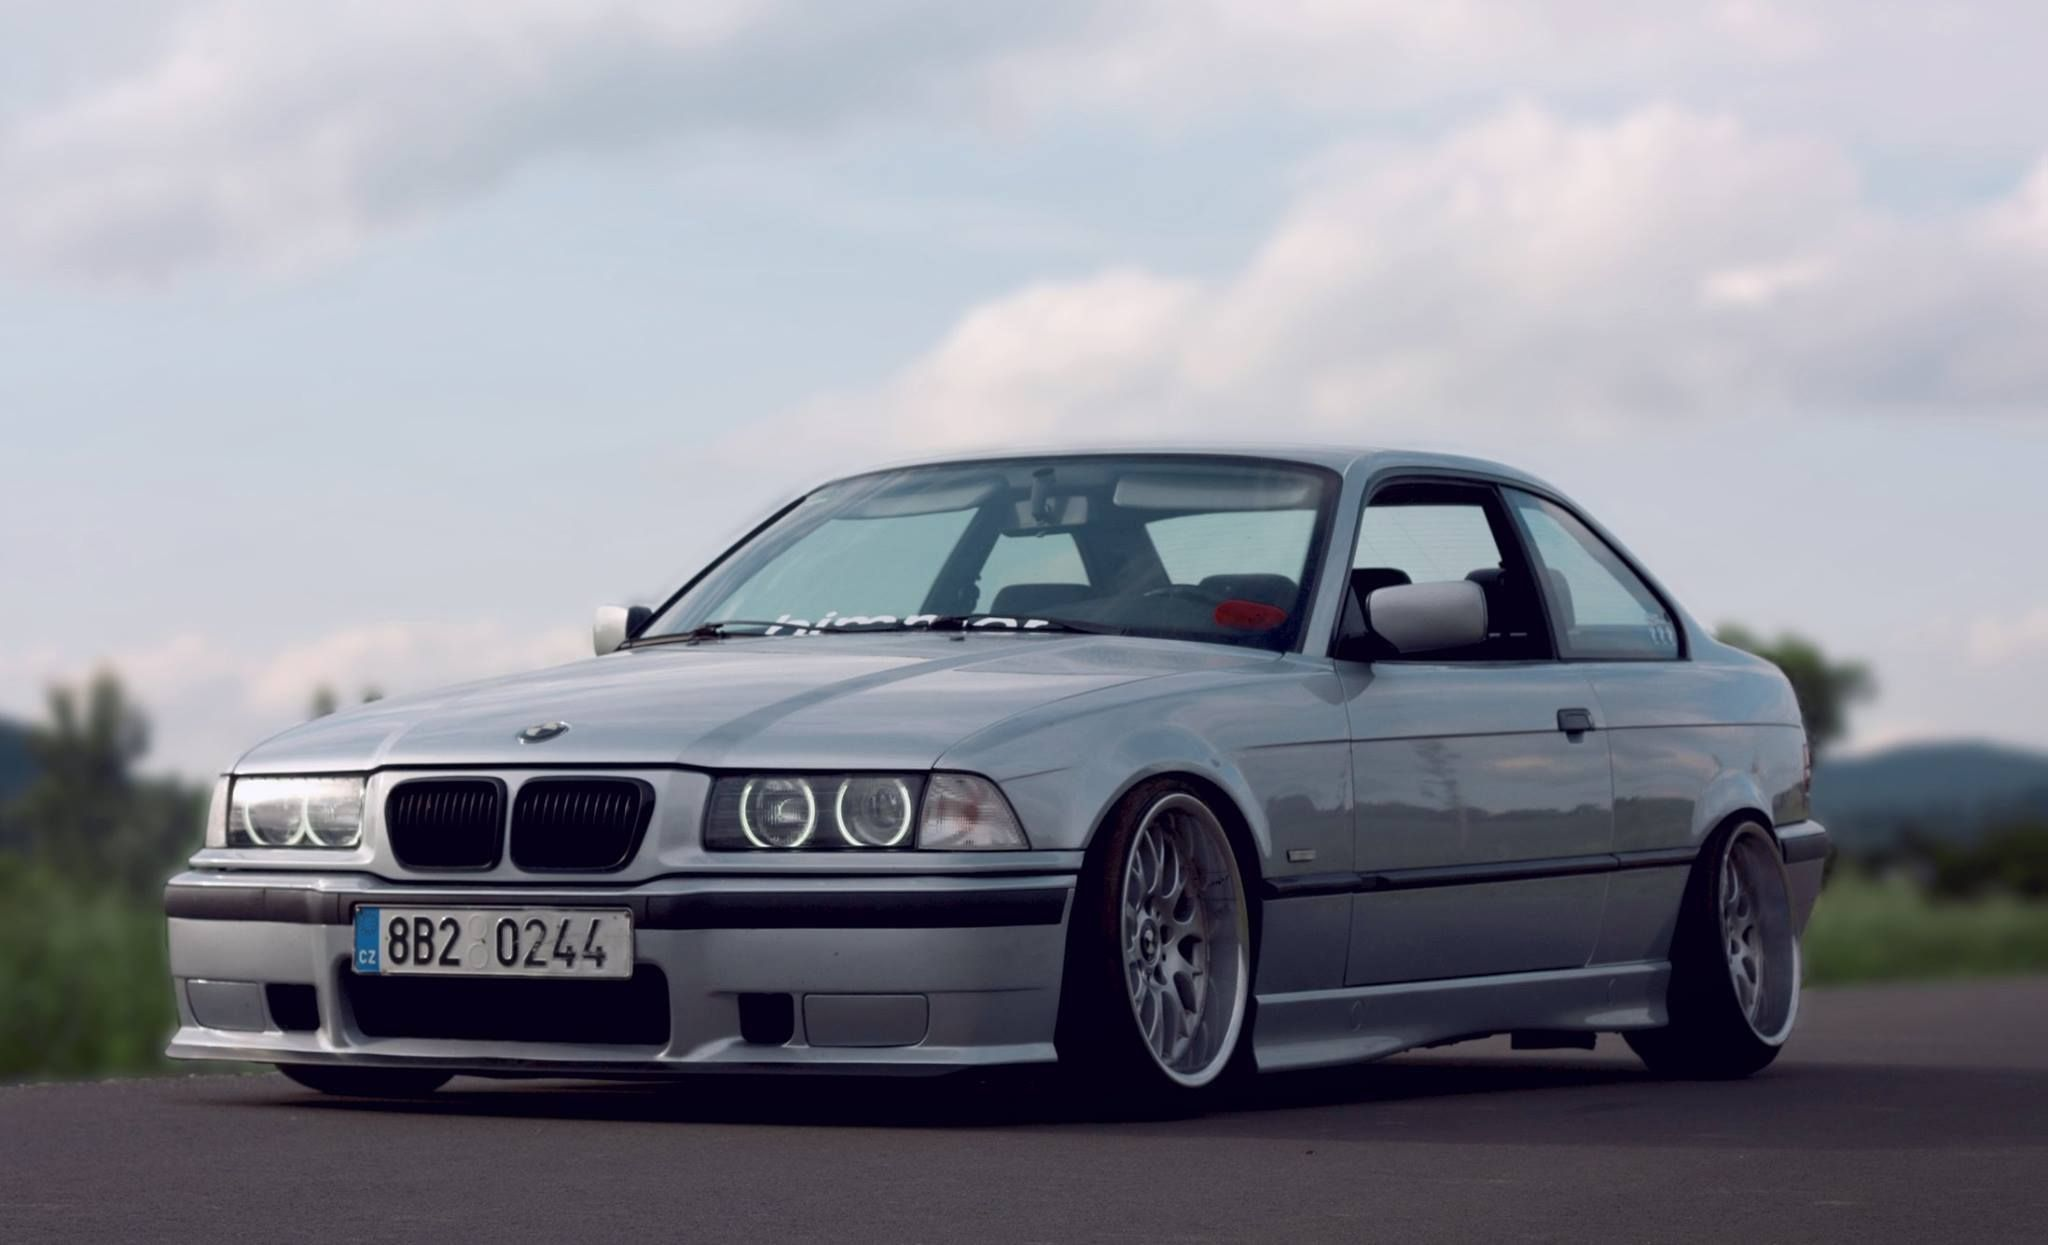 silver bmw e36 coupe on rondell 058 wheels automotive pinterest bmw and wheels. Black Bedroom Furniture Sets. Home Design Ideas